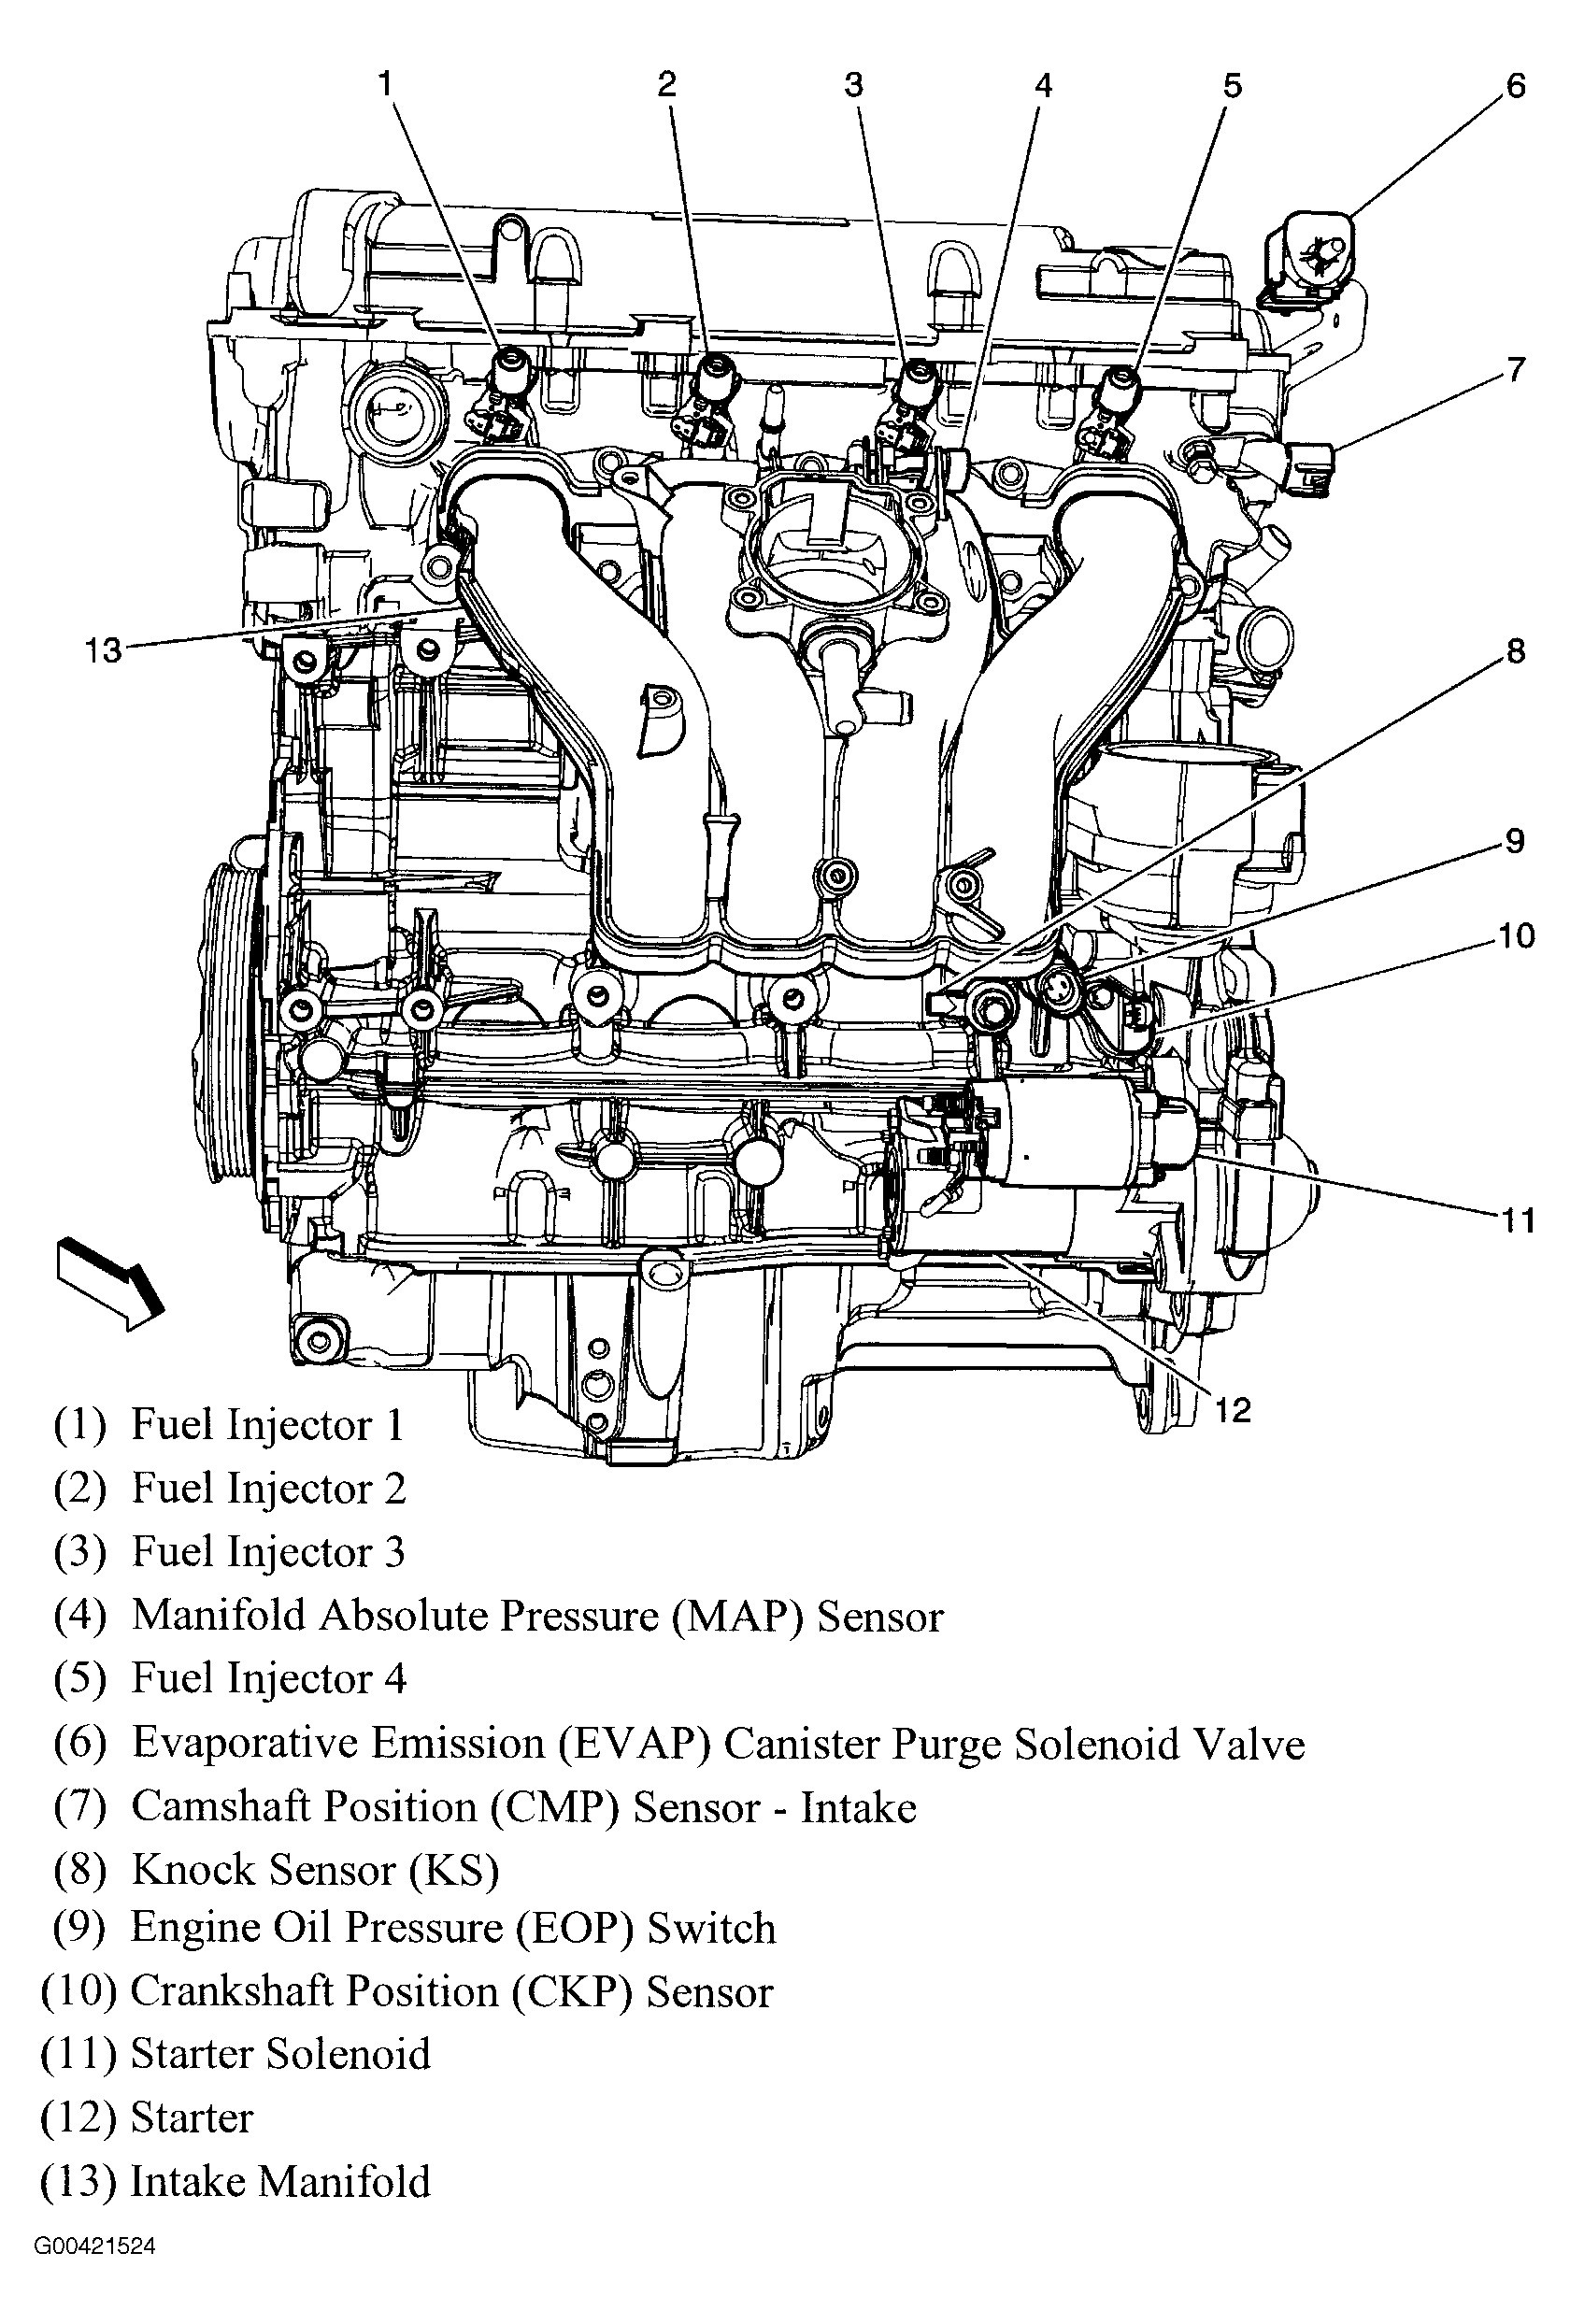 4 9 cadillac engine diagram wiring library schema diagram rh 18 qwgwer navigationsvergleich de